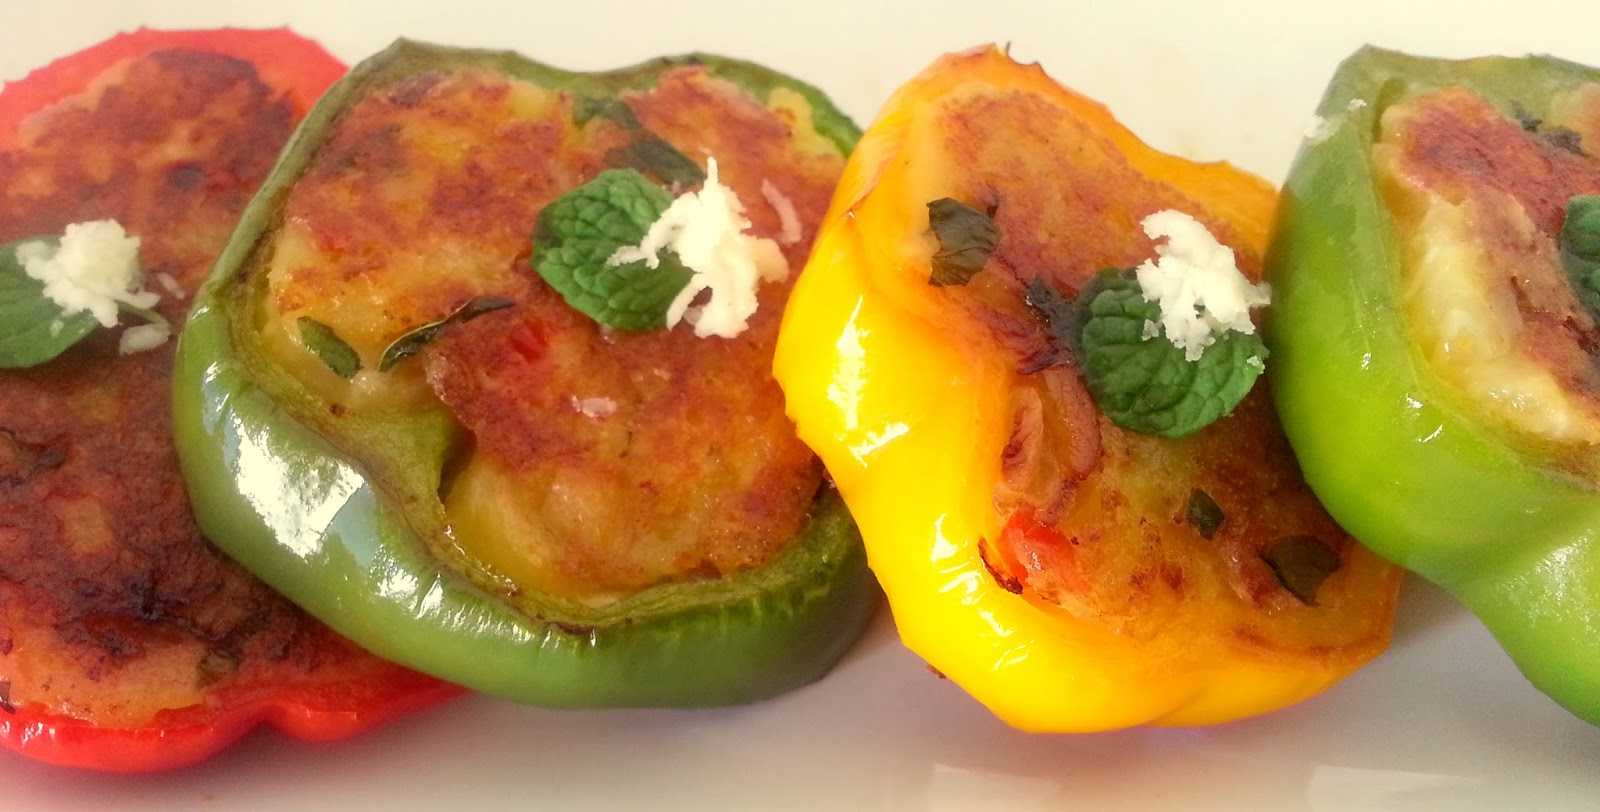 Annapurna stuffed bell peppers vegetarian starter recipe everything we do in life and the colors we choose in our food is no exception adding colors to our palate is the best way to brighten up our mood forumfinder Choice Image